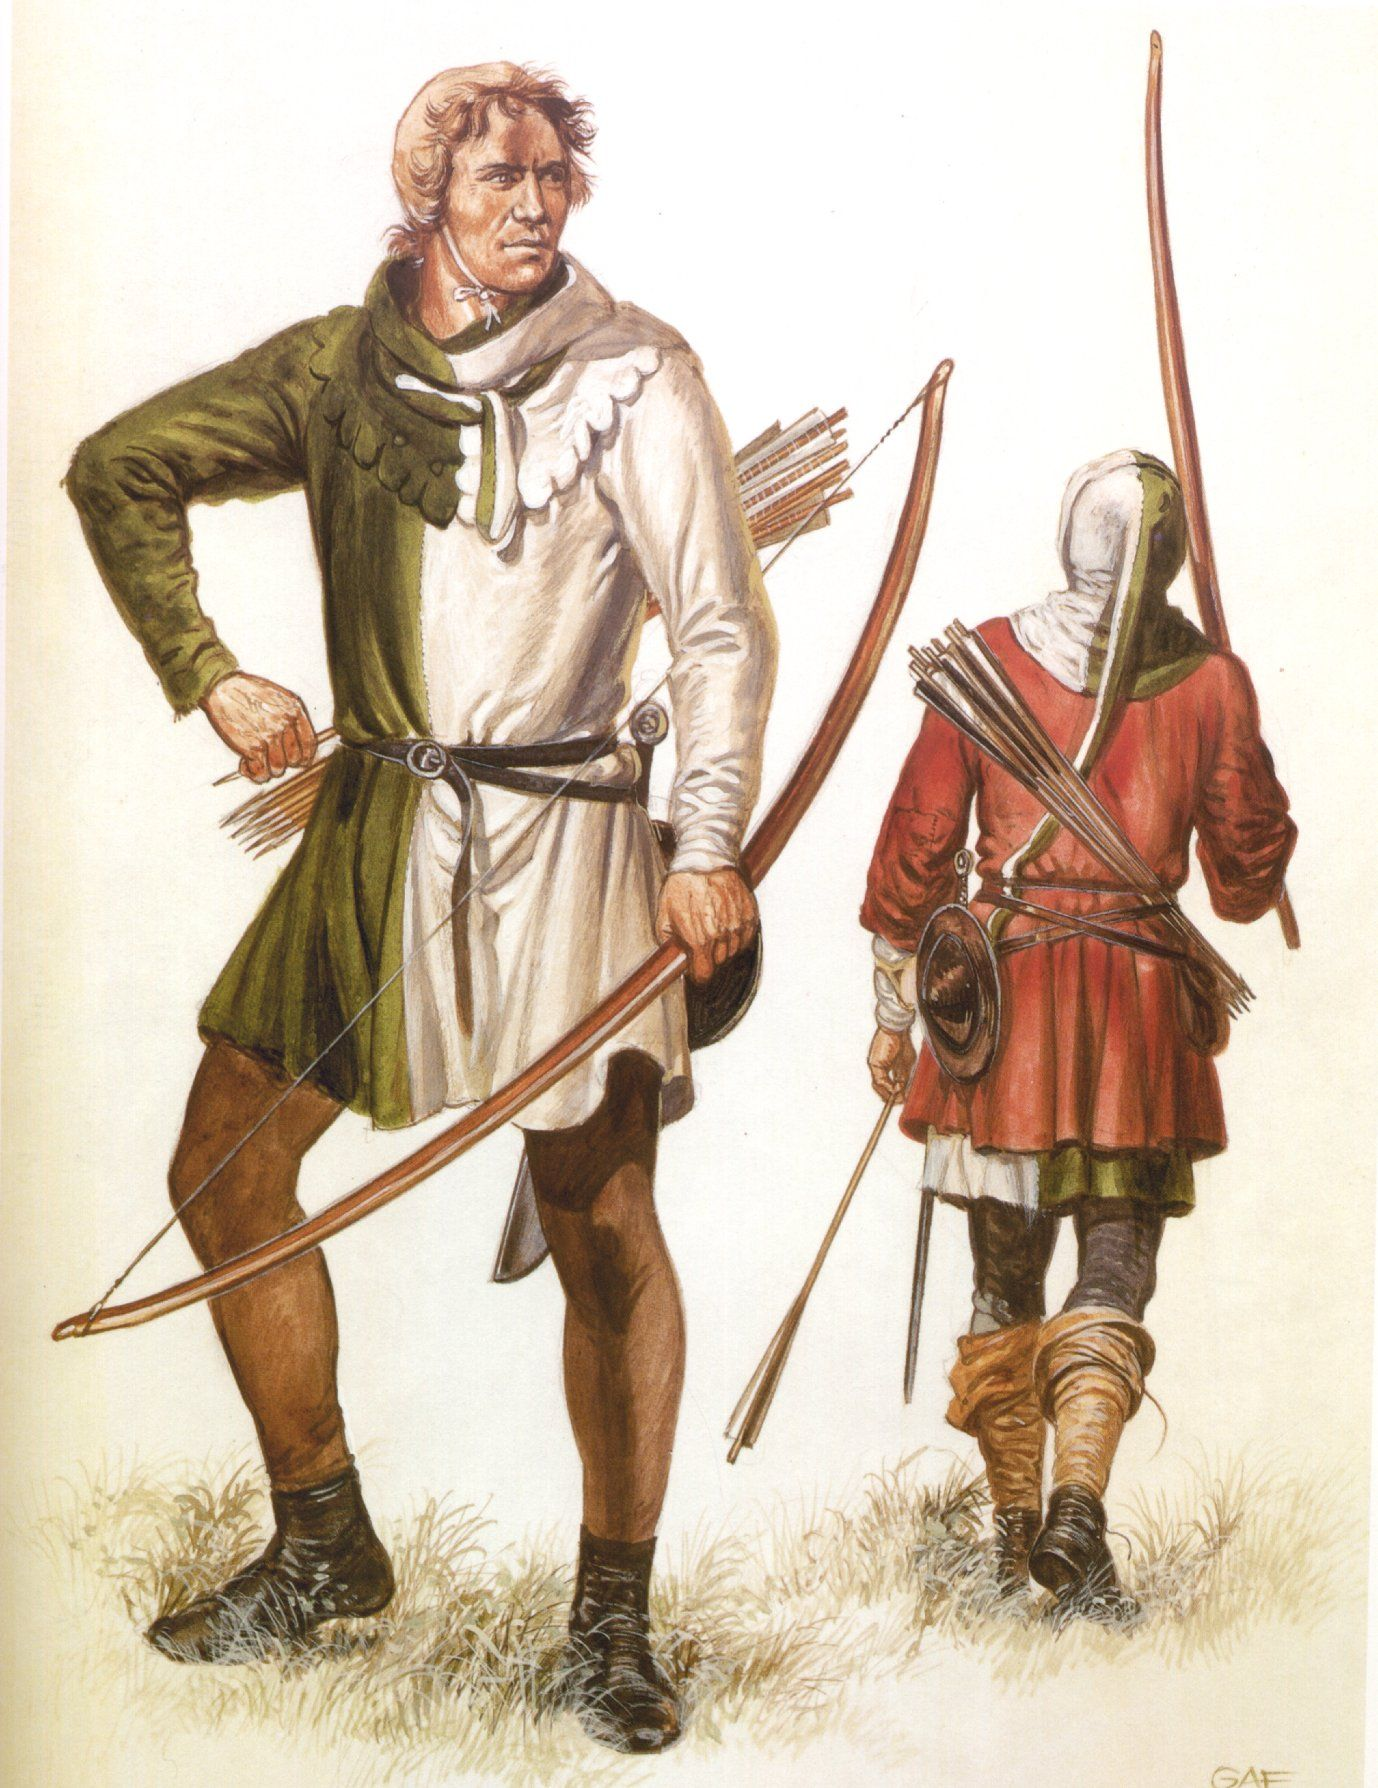 medieval archery clothing images - photo #11